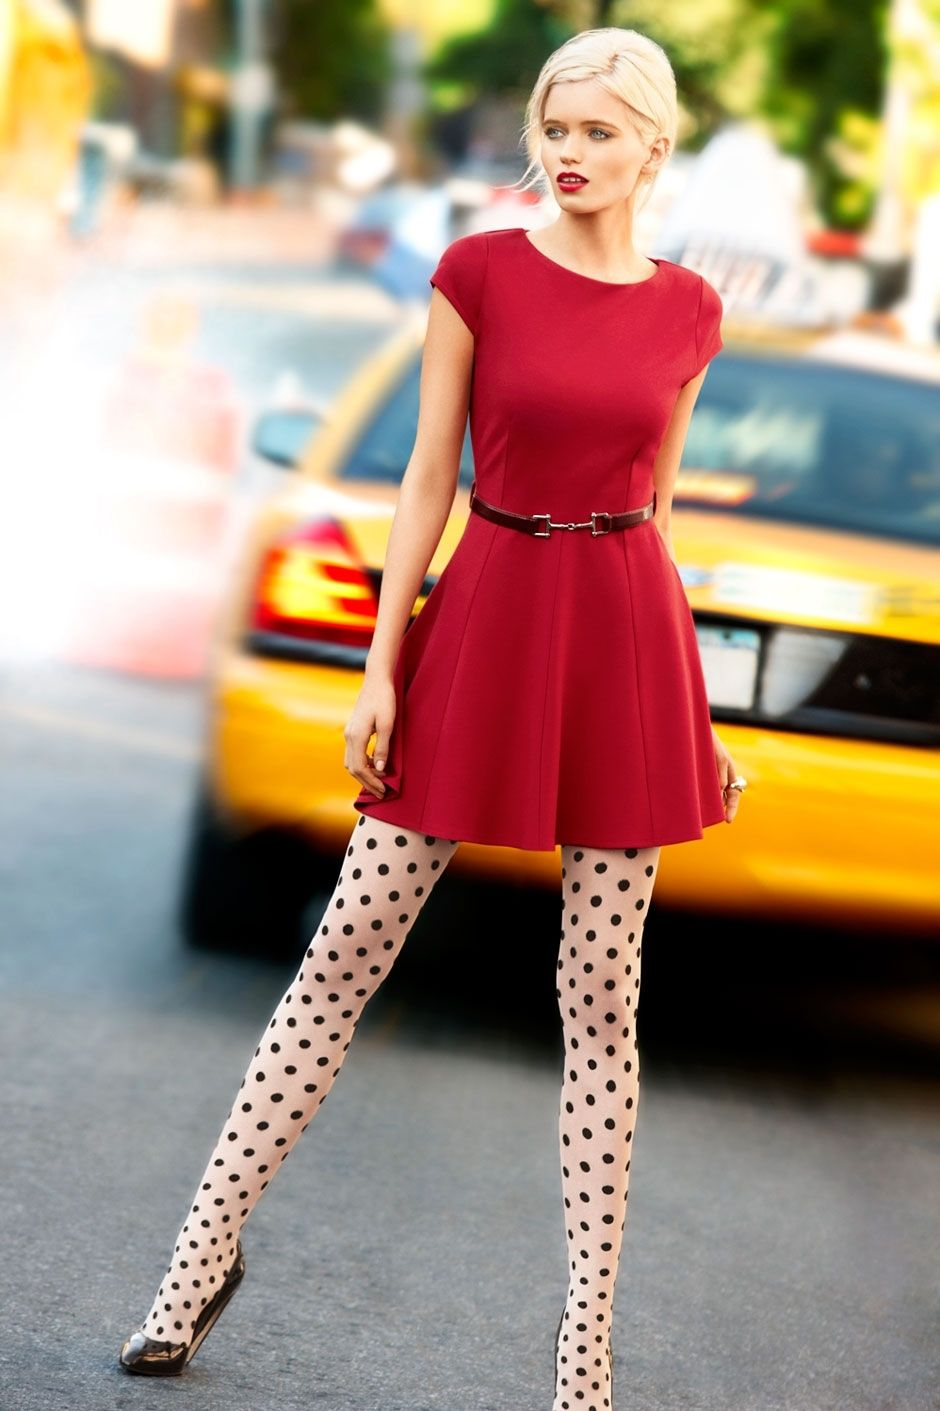 Looks - How to colored wear patterned tights video